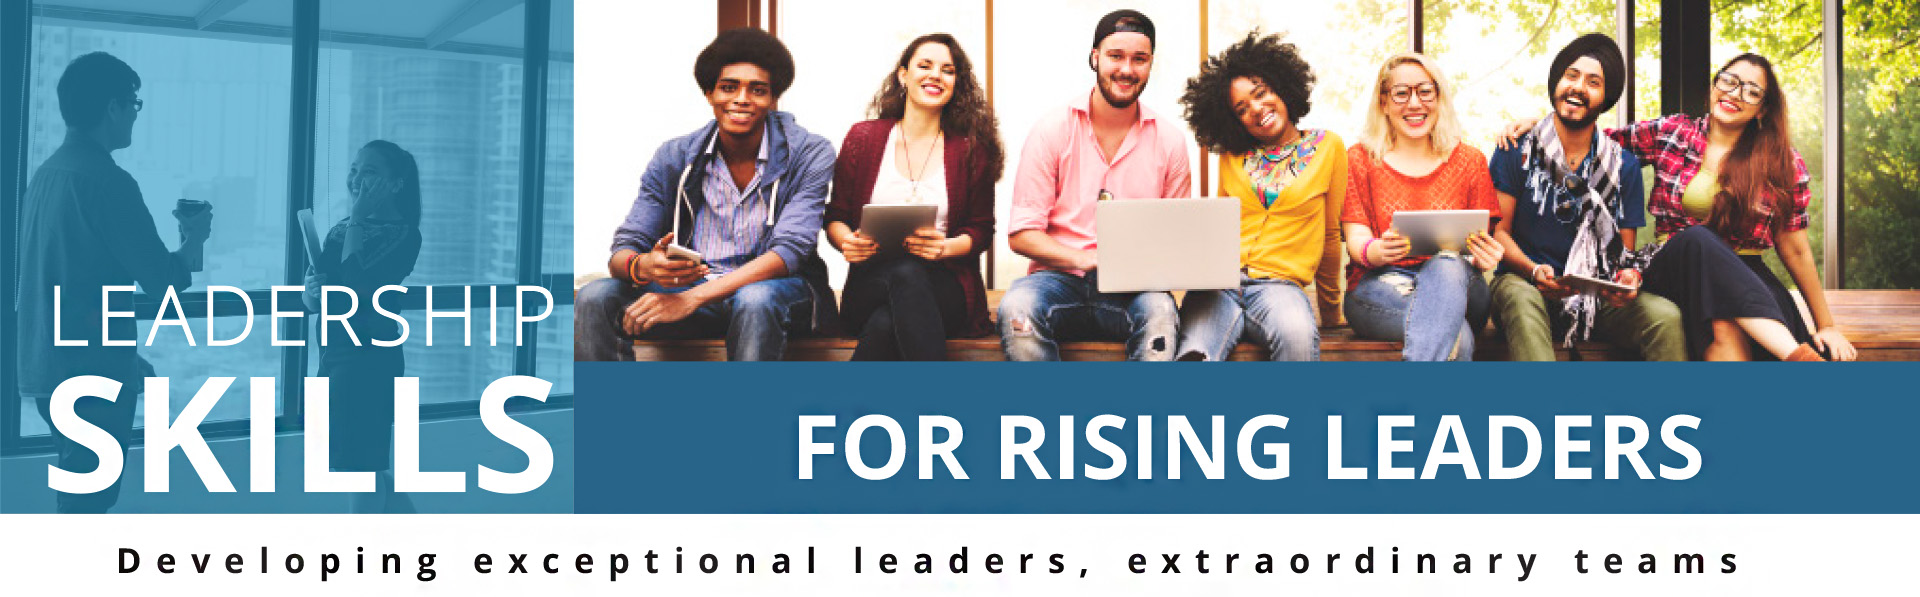 Leadership Skills for Rising Leaders